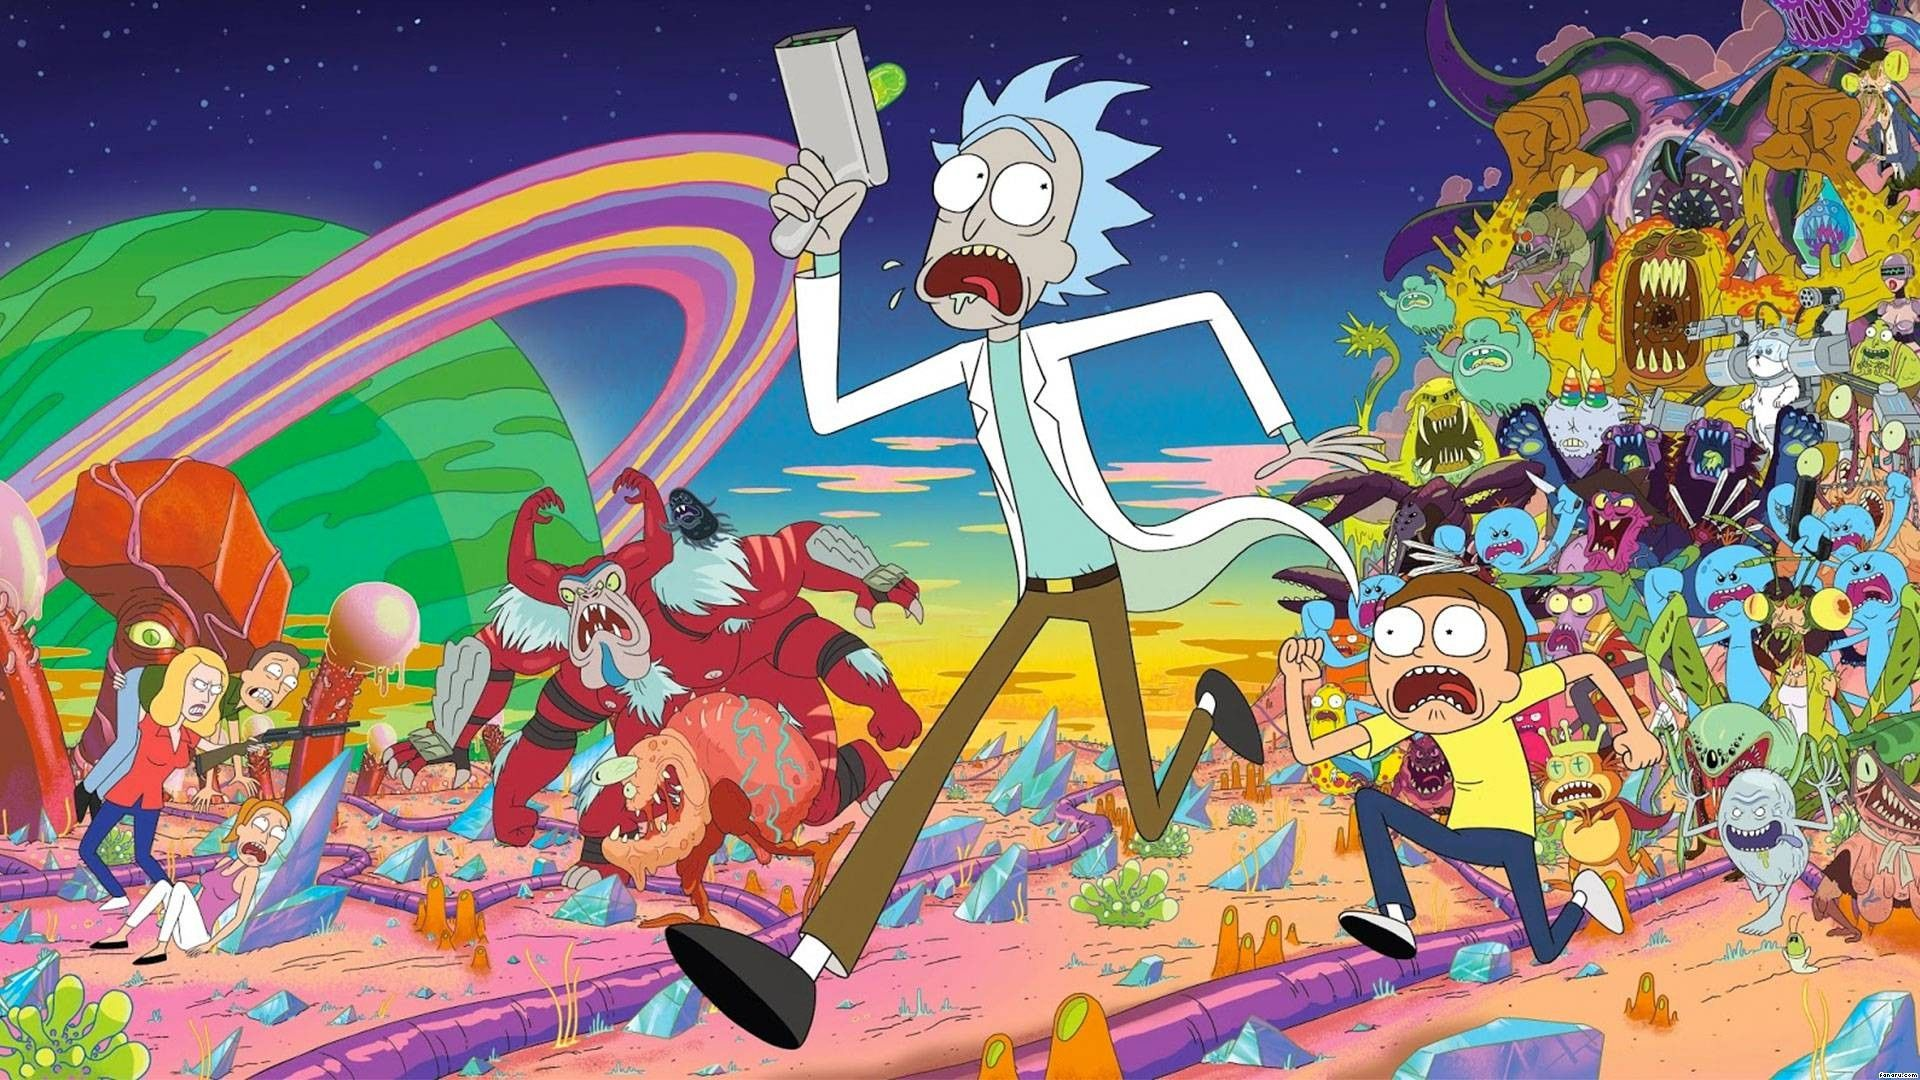 Rick And Morty Hd Wallpapers Cartoon Theme Rick And Morty Characters Rick And Morty Season Watch Rick And Morty